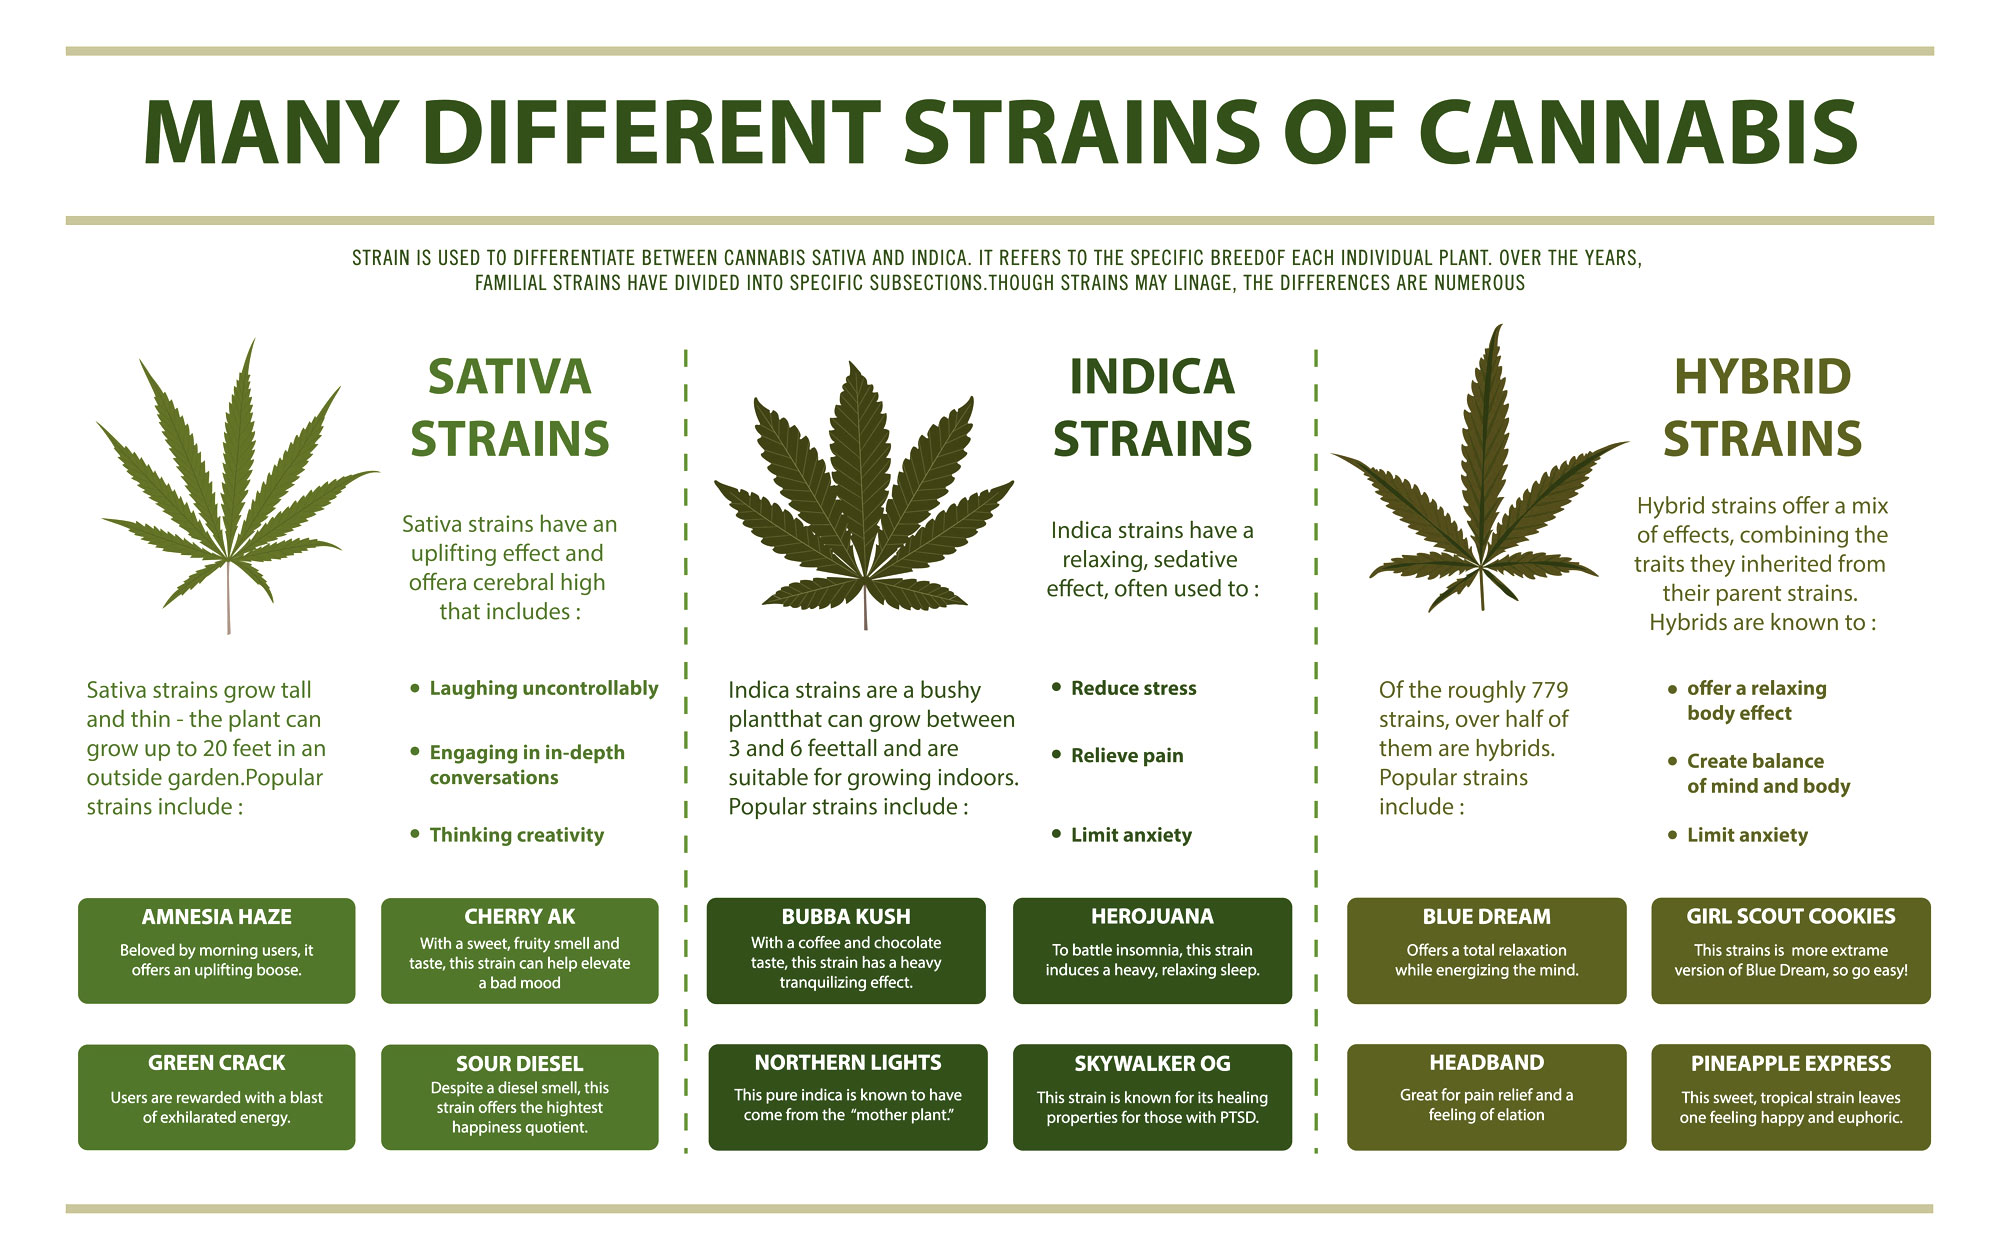 chart illustrating the many different strains of cannabis